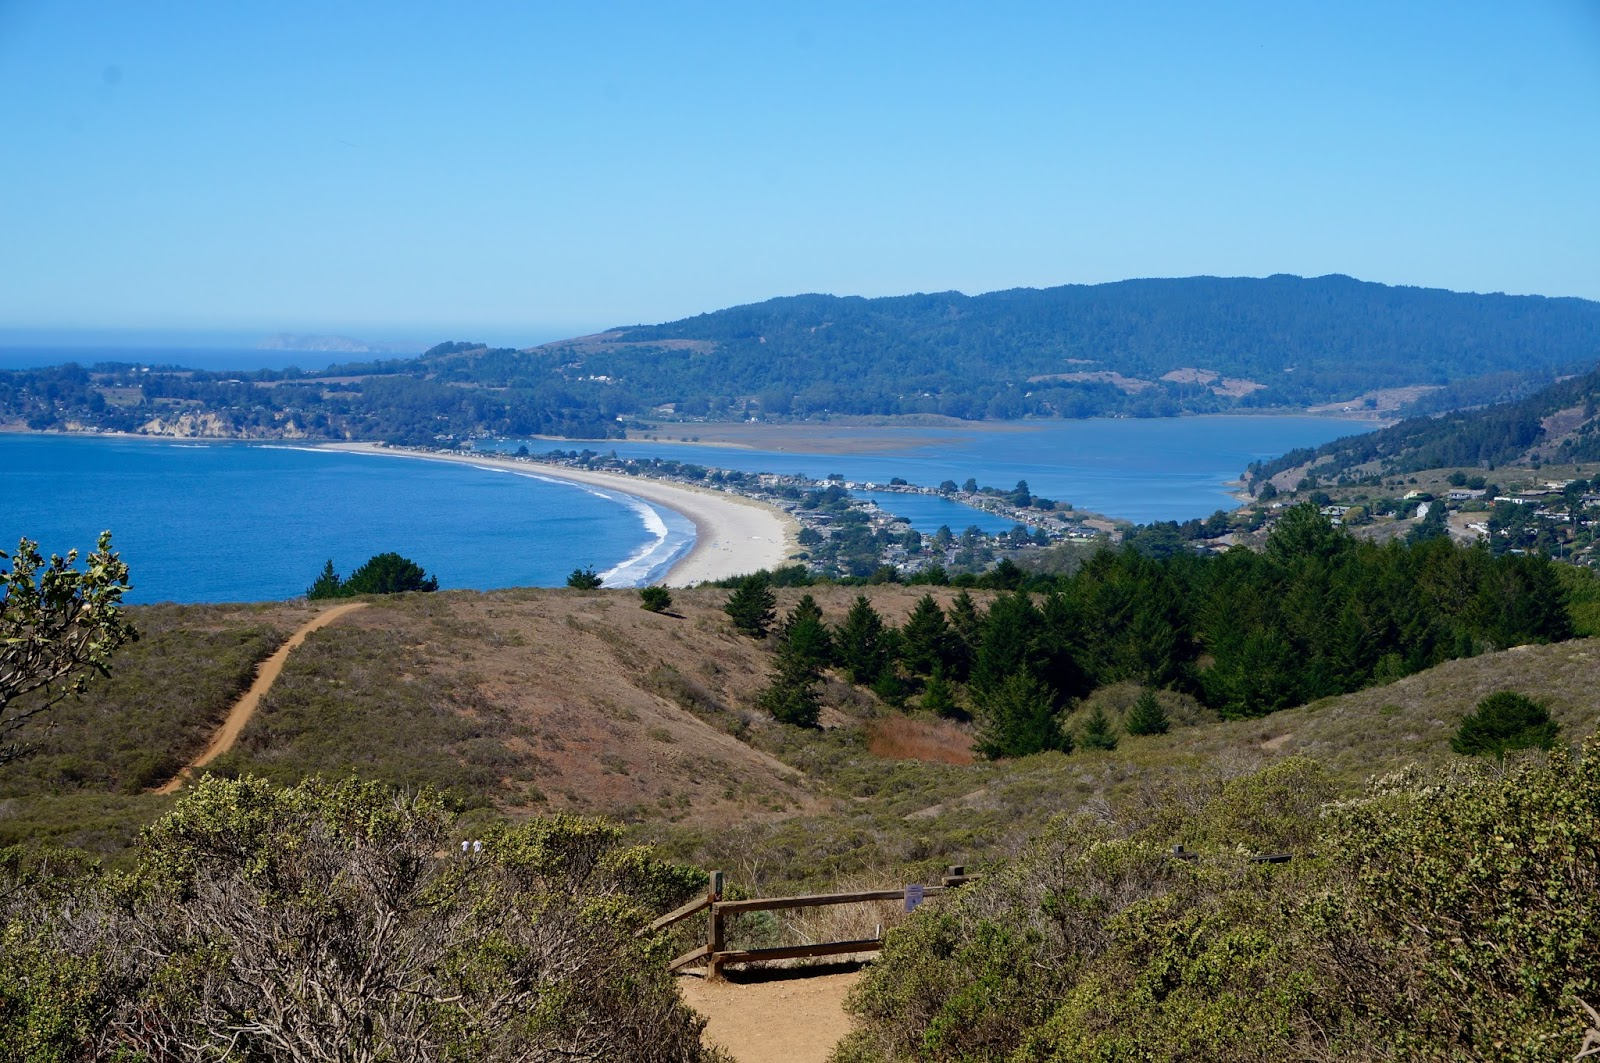 Bay Area Hiking Guide: Stinson Beach Hikes greysuede.com